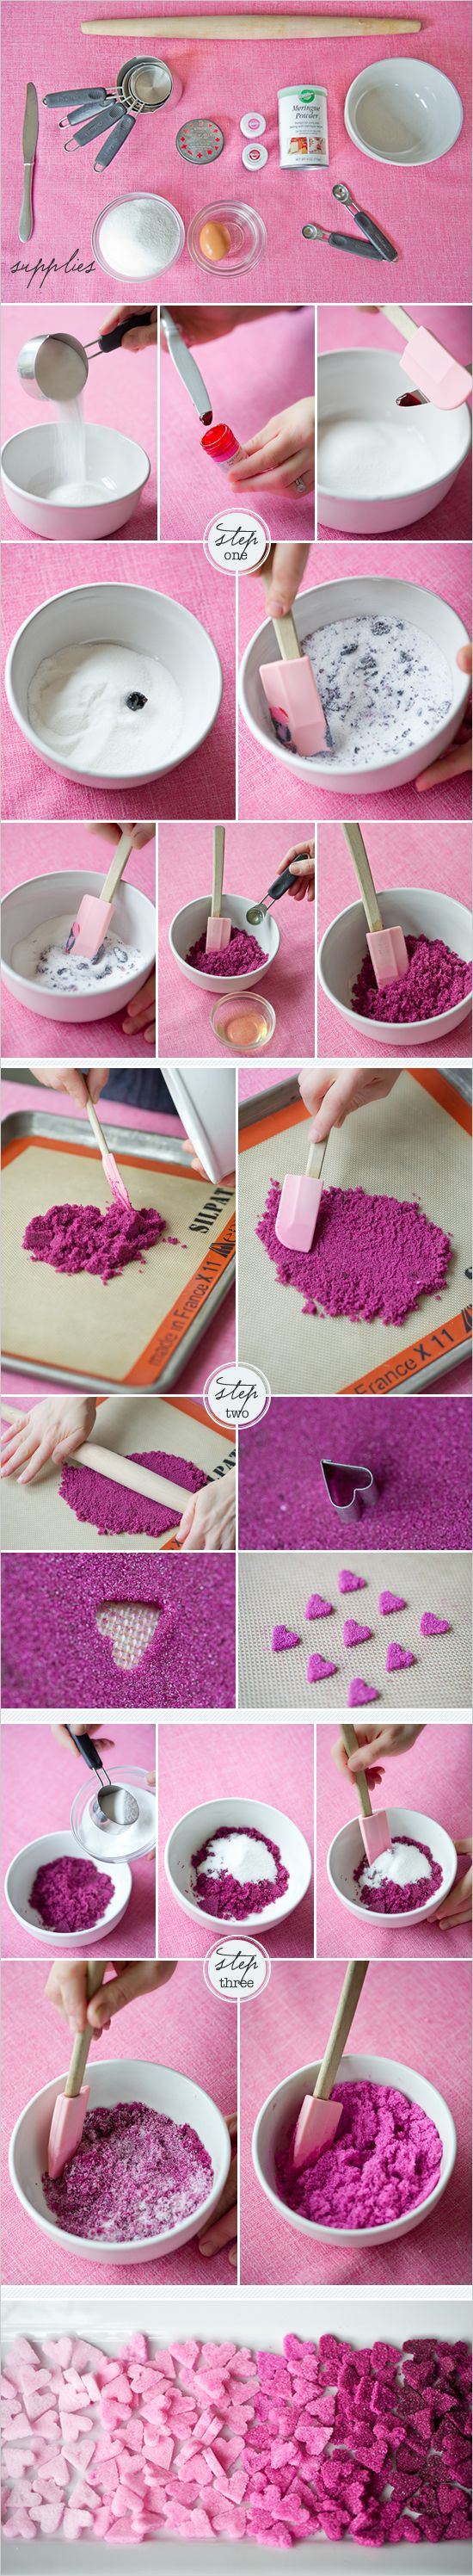 DIY Ombre Sugar Hearts How-To ~ could easily be used for a bridal shower, for wedding favors, as a special surprise for your sweetie on Valentine's Day or even on a wedding cake!